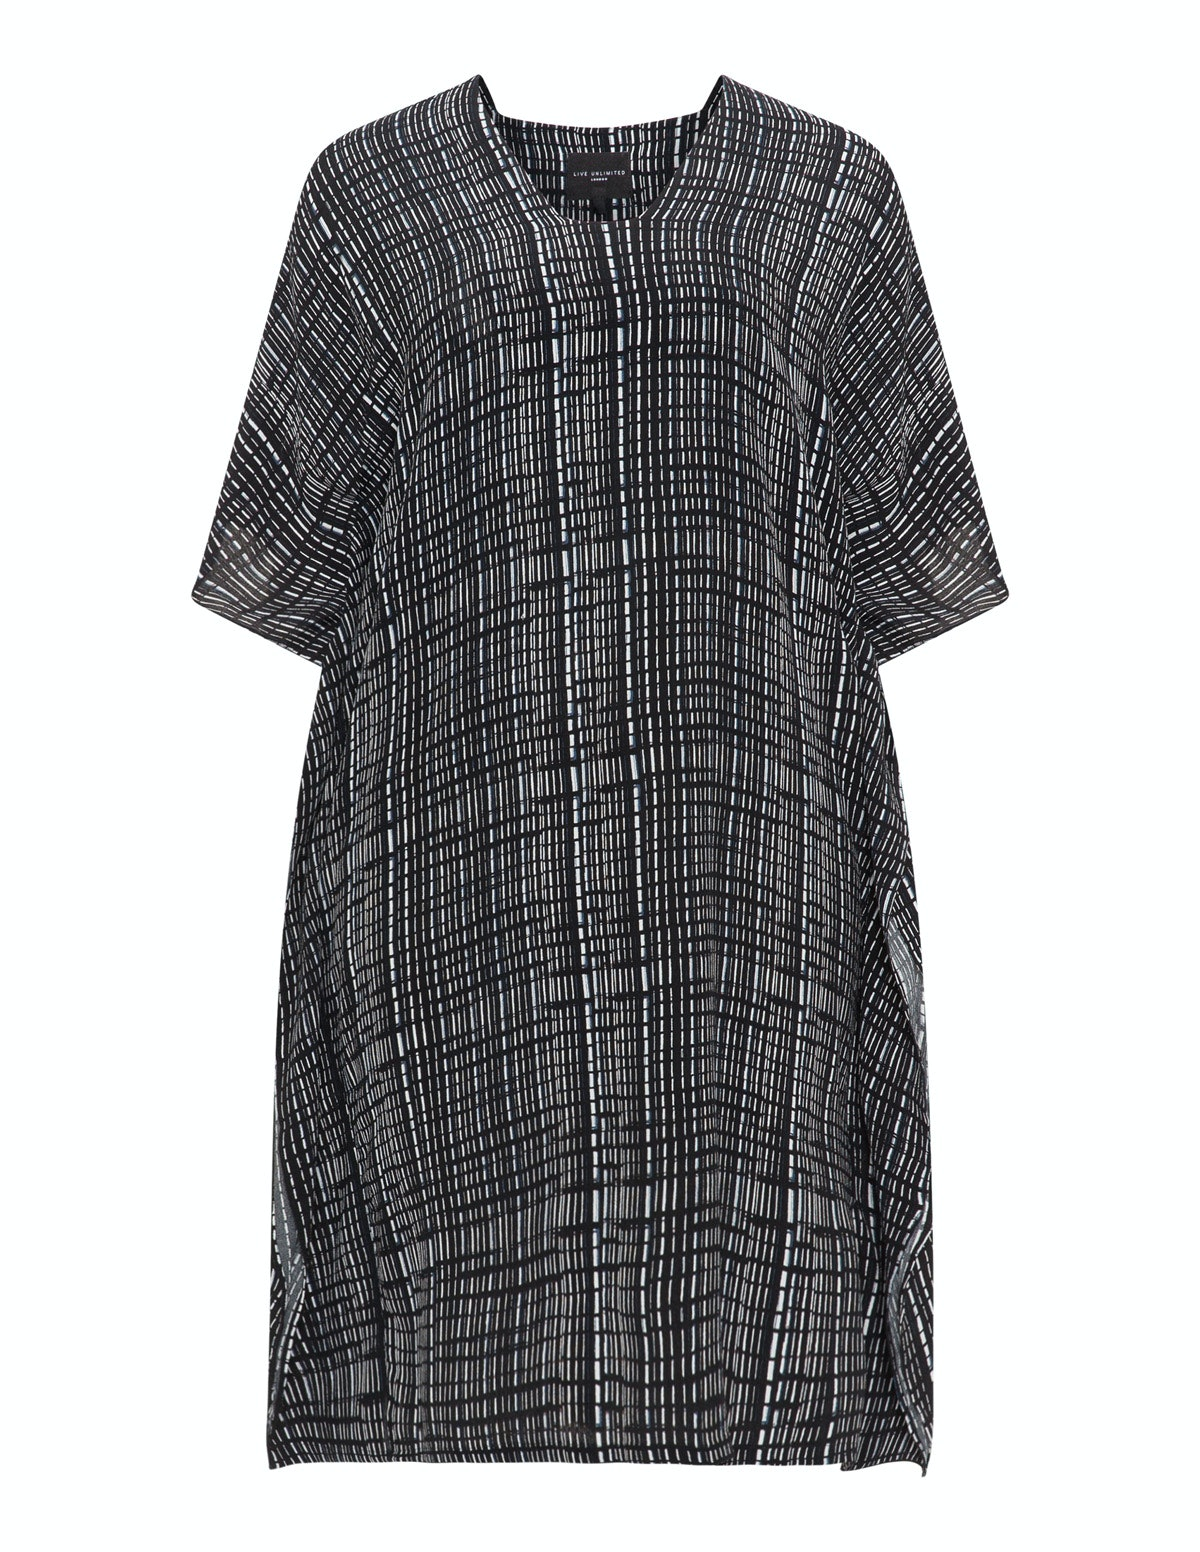 b20c2a67d23 29 Plus Size Caftans That Can Easily Transition Into Your Fall Wardrobe